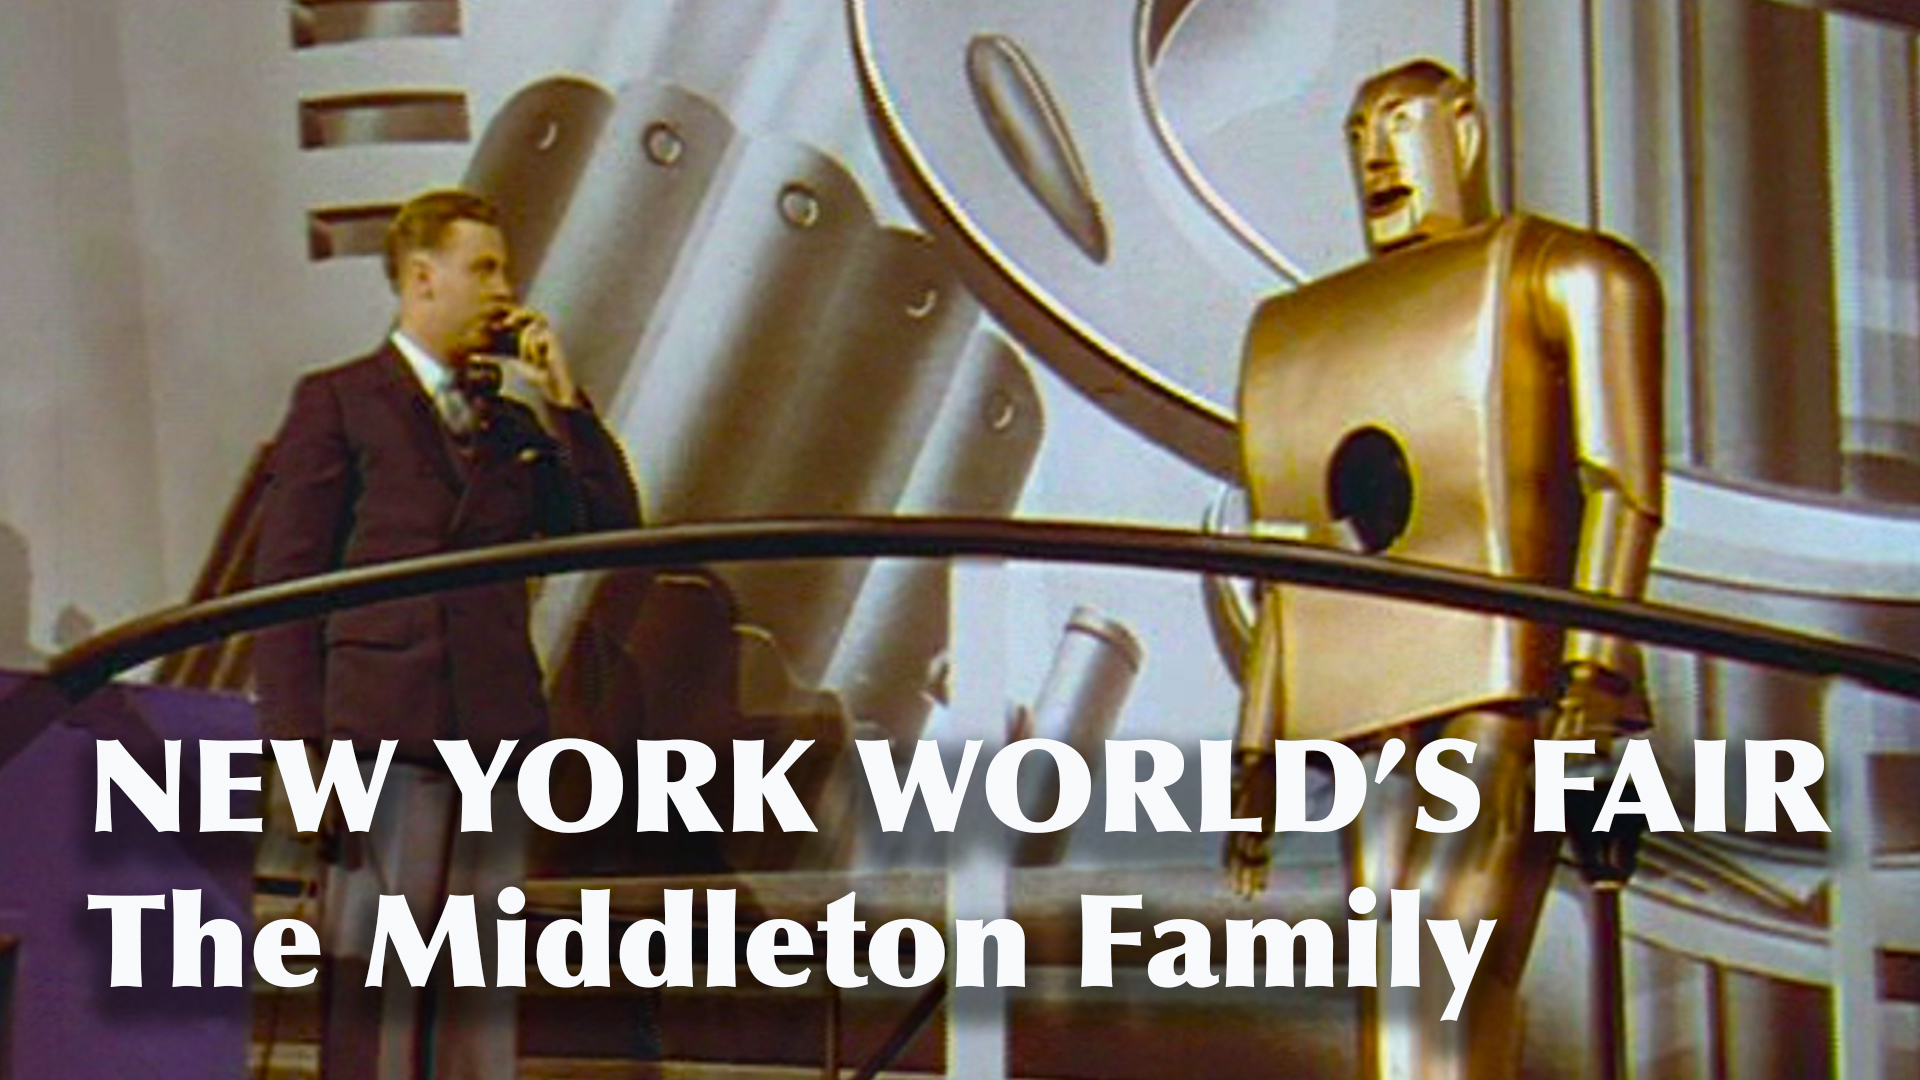 New York World's Fair: The Middleton Family